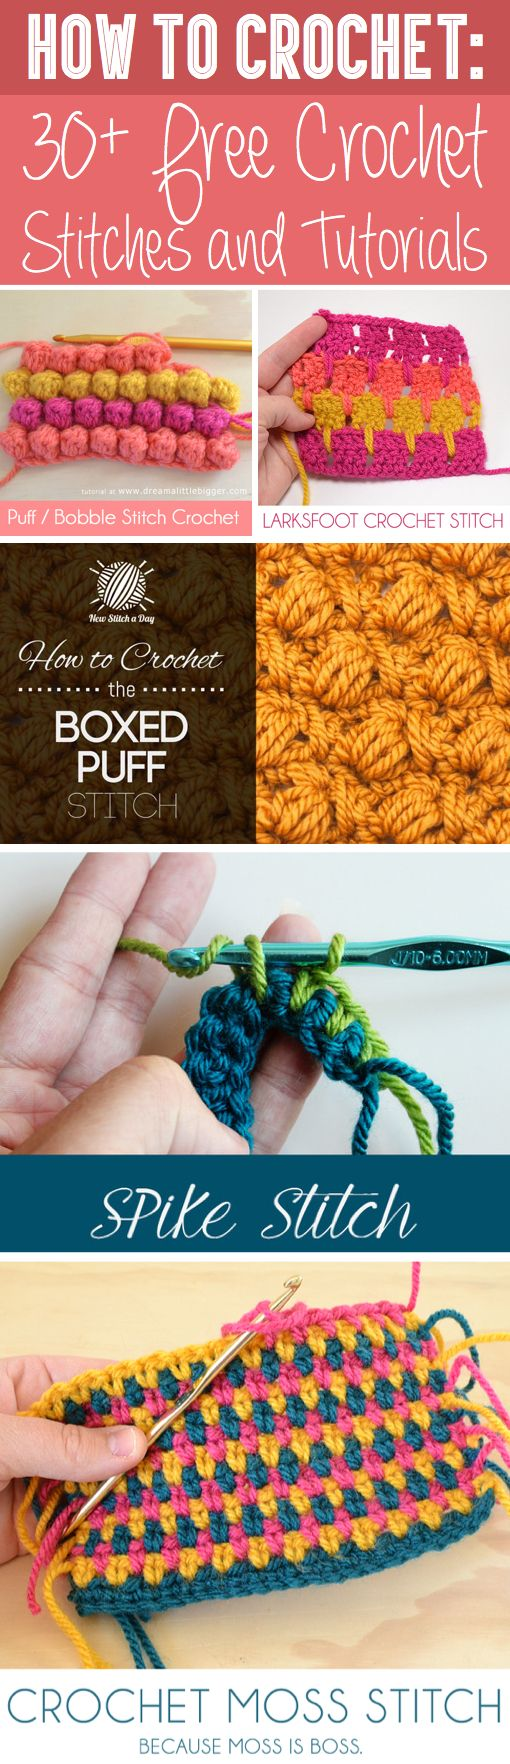 How To Crochet 30 Free Crochet Stitches And Tutorials Yarn